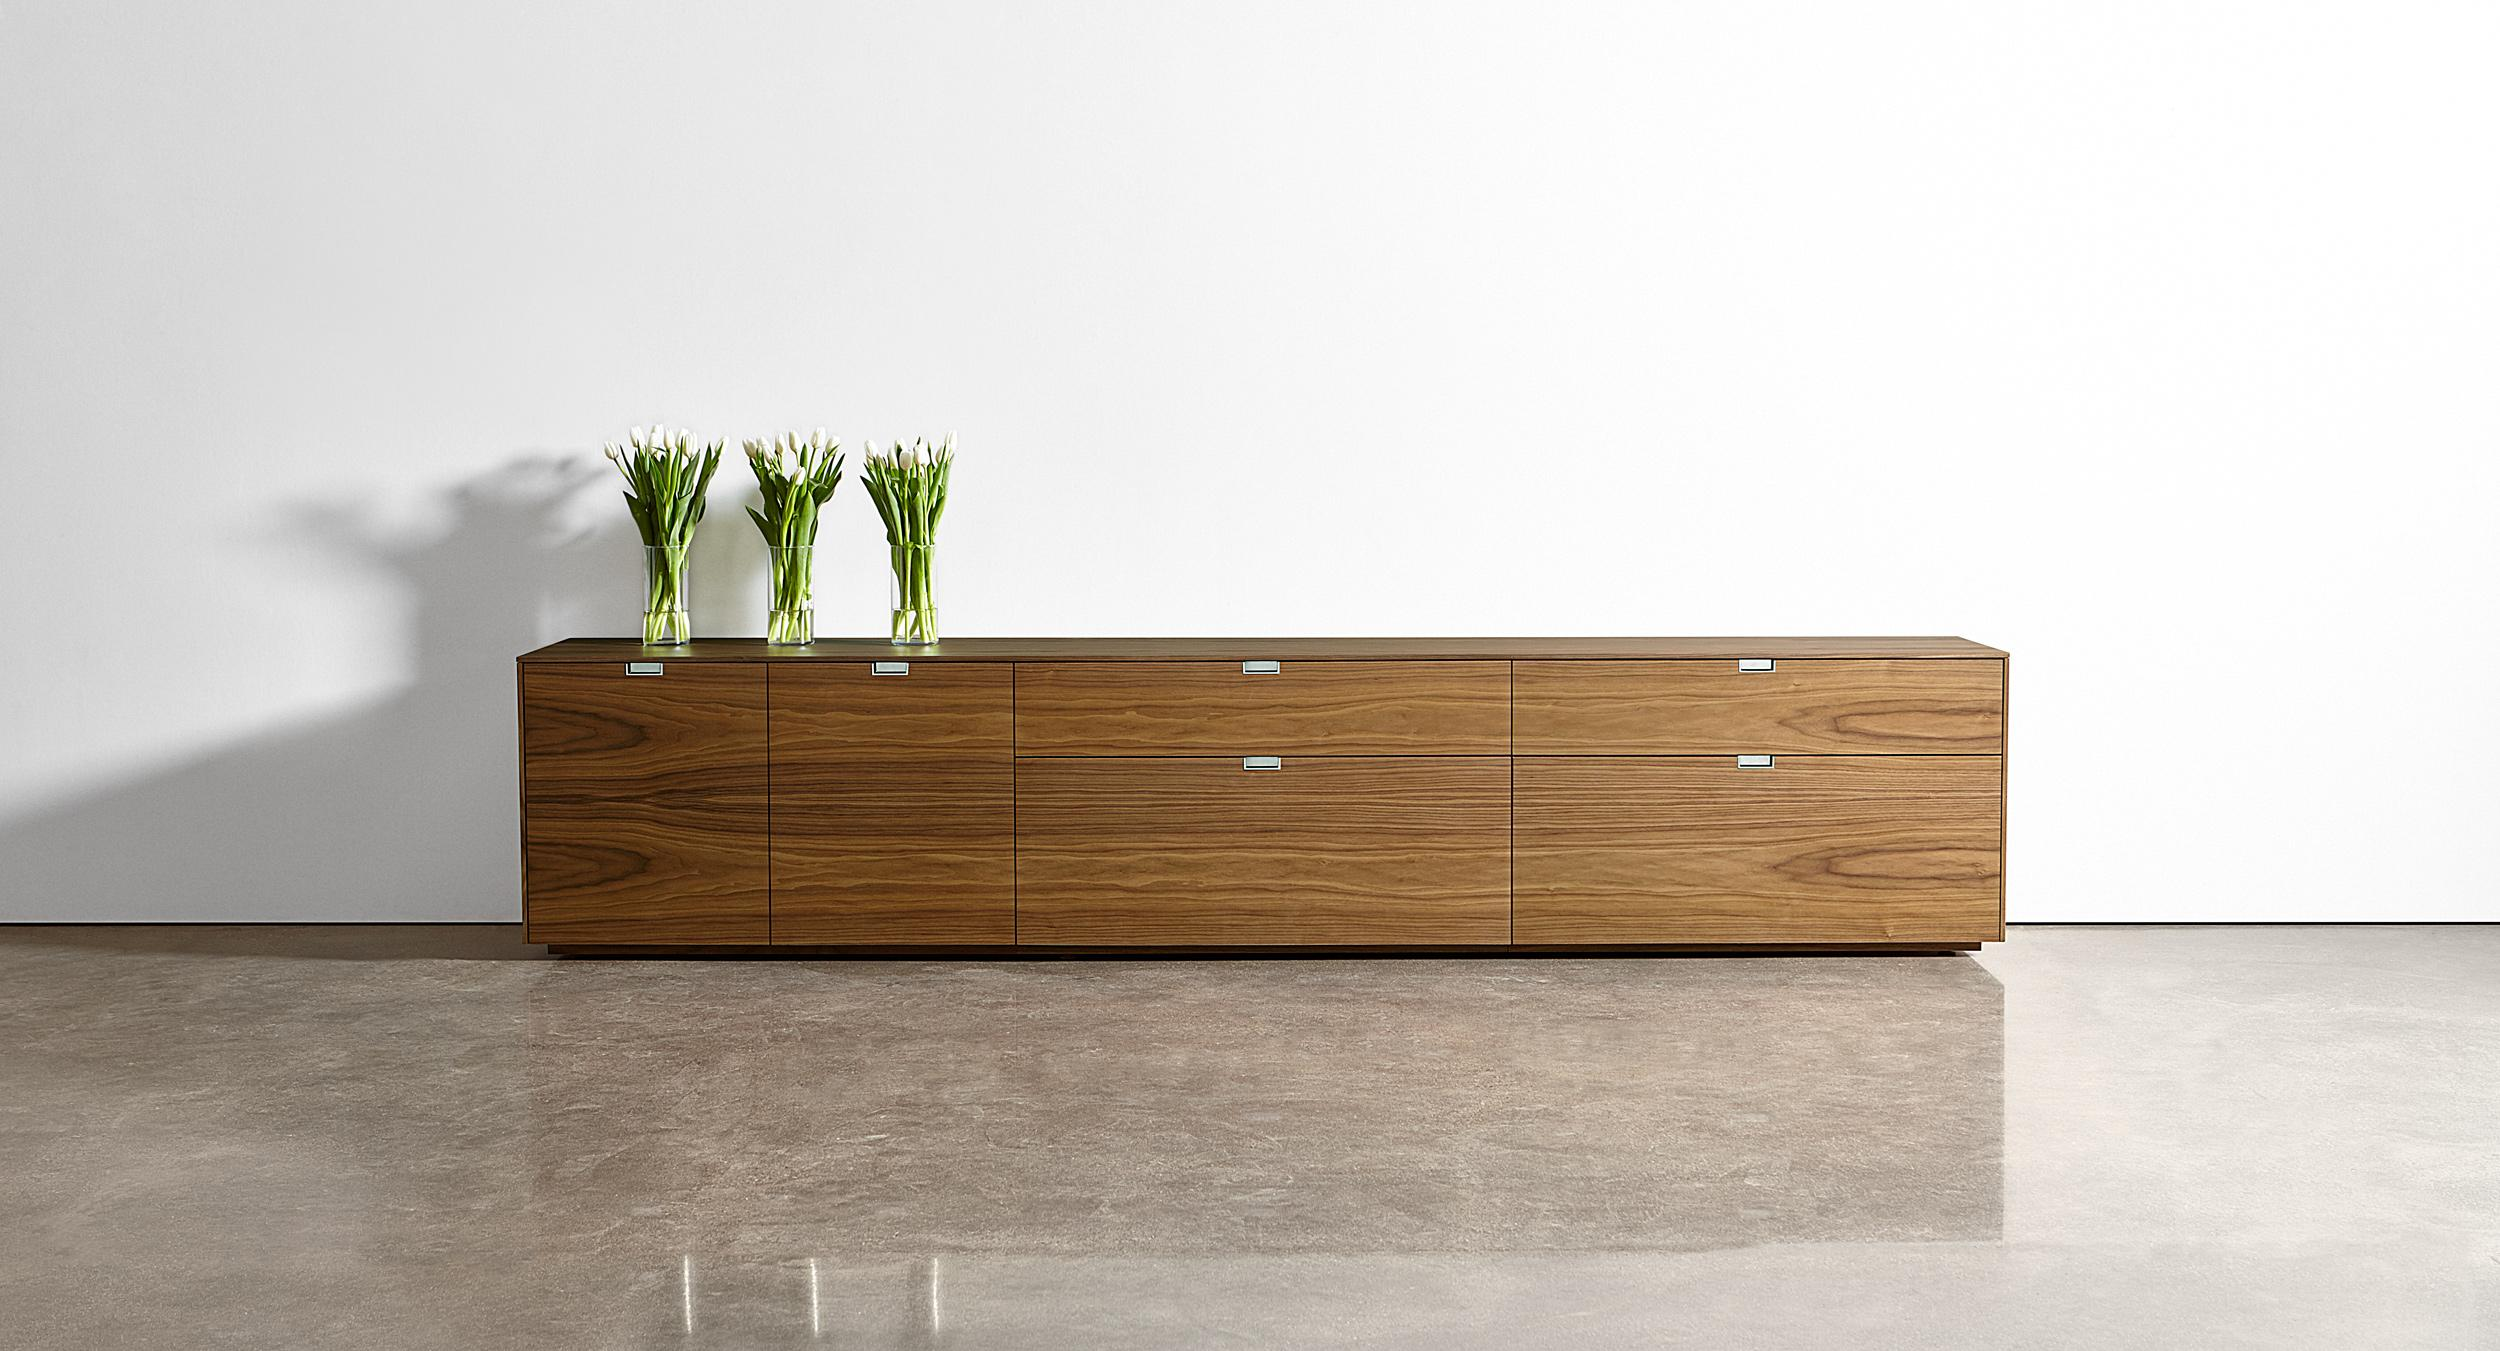 LEX storage credenzas can be specified in any size, shape, material, and finish.